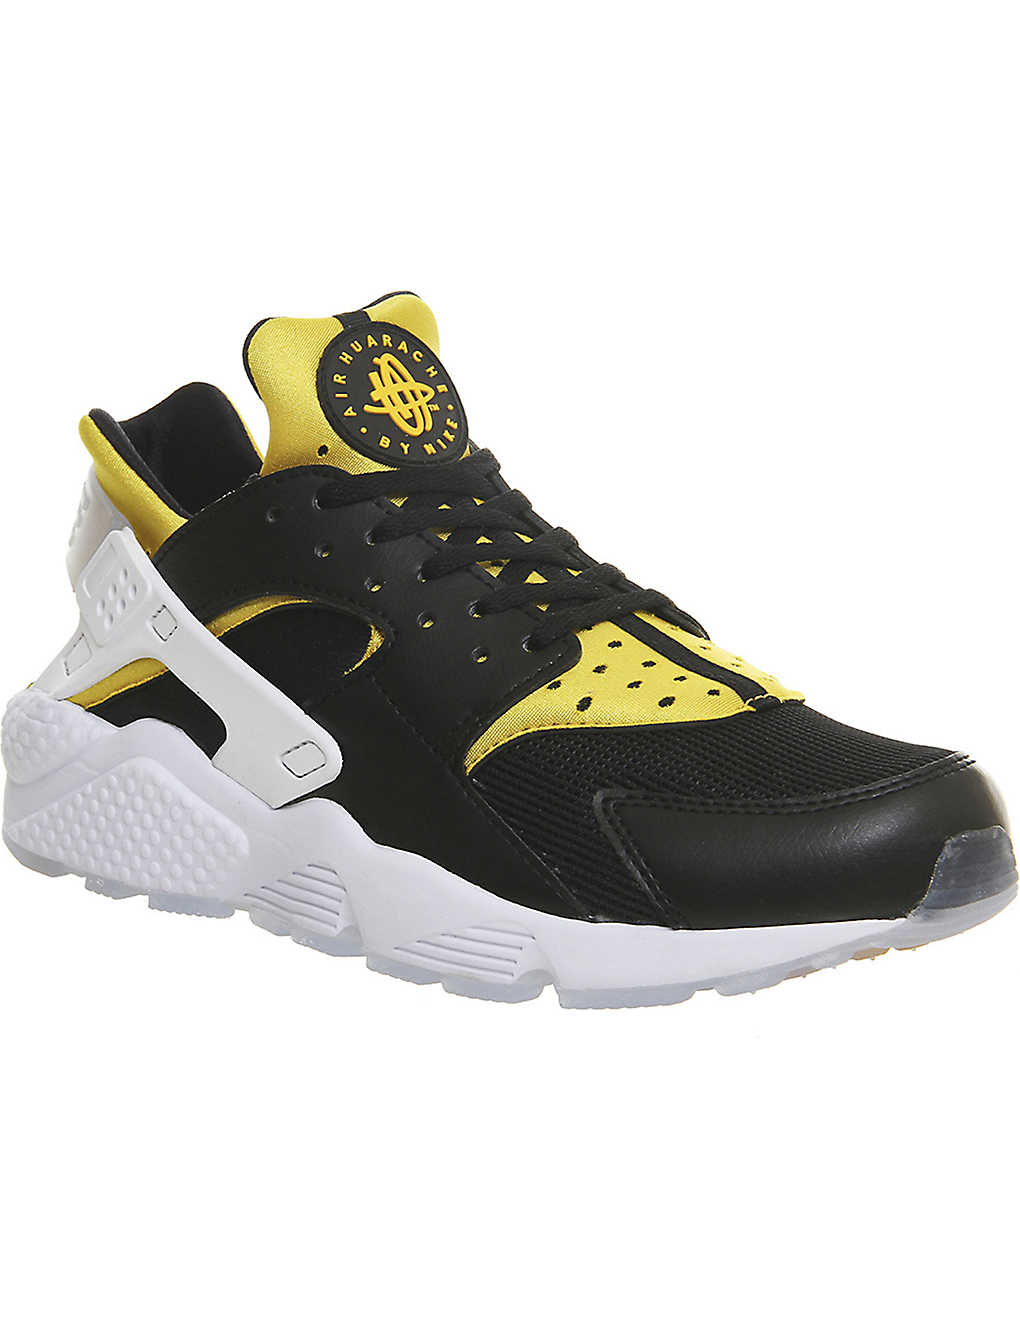 timeless design 72ce1 71cba NIKE - Nike Air Huarache City Pack Berlin trainers | Selfridges.com